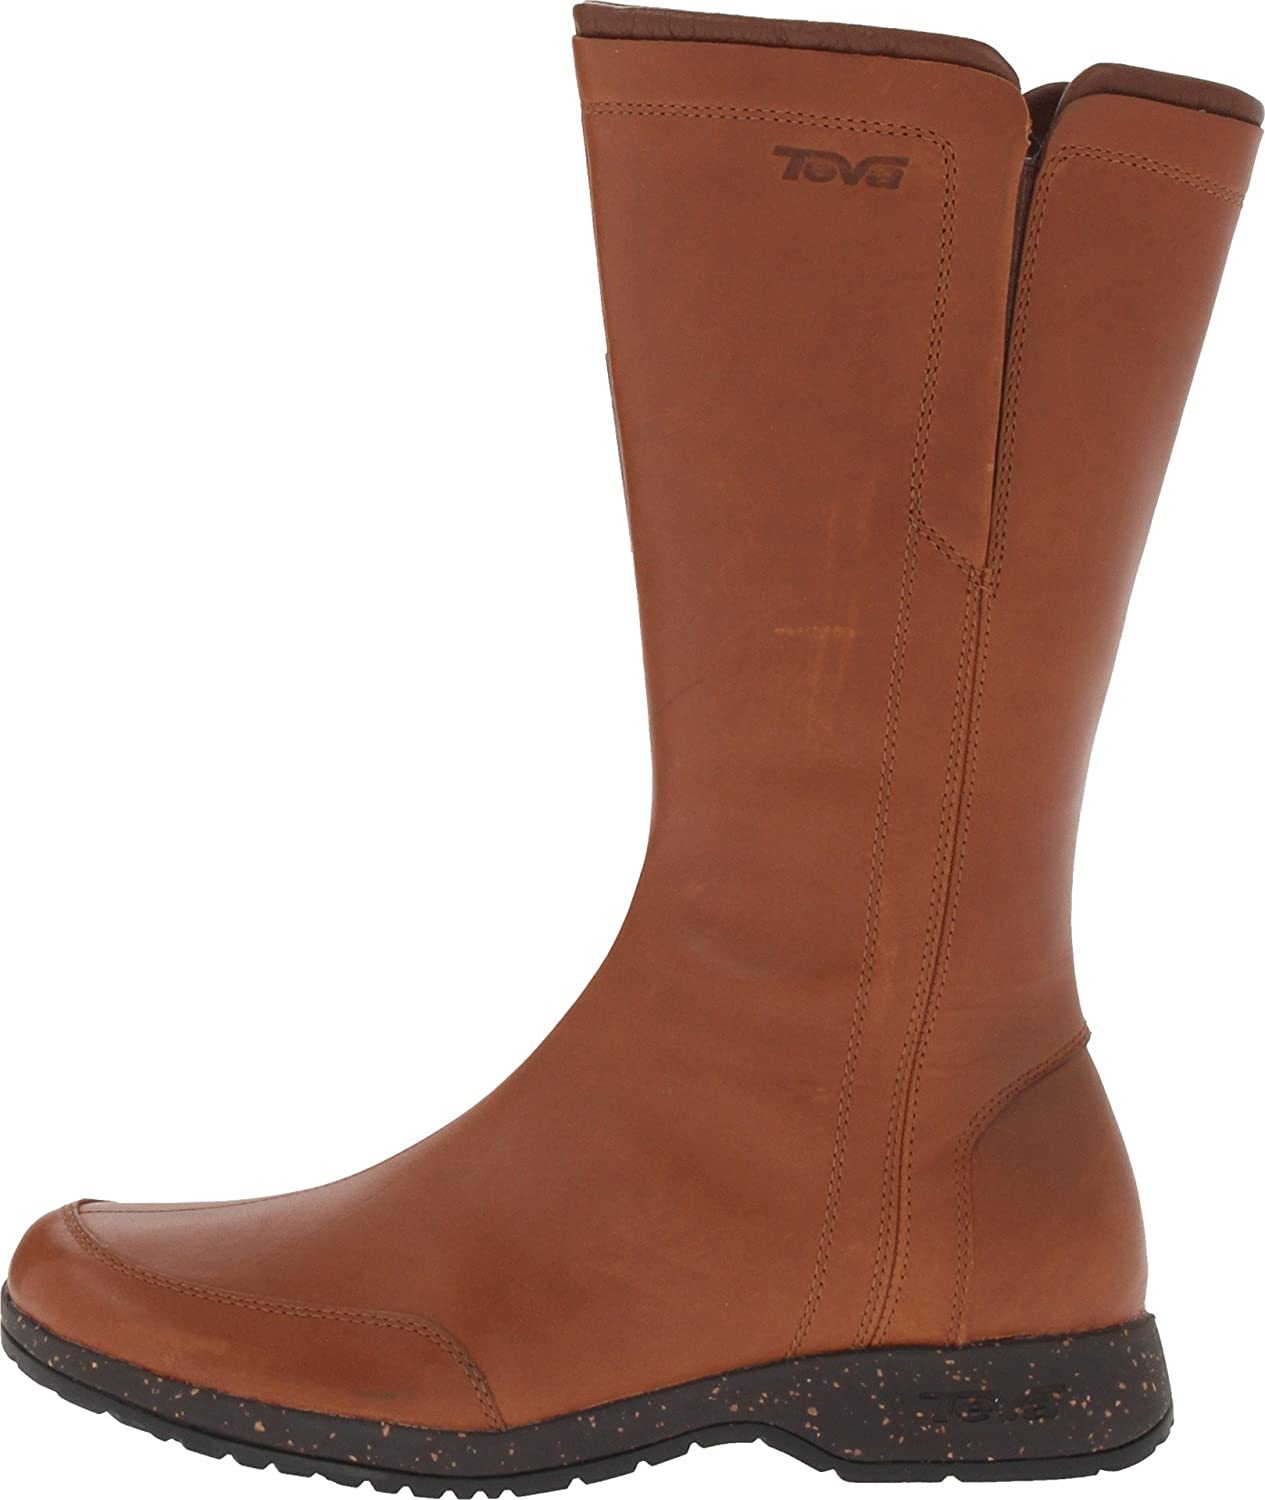 657a8391d4d7 Teva Women s Capistrano Boot  Amazon.co.uk  Shoes   Bags